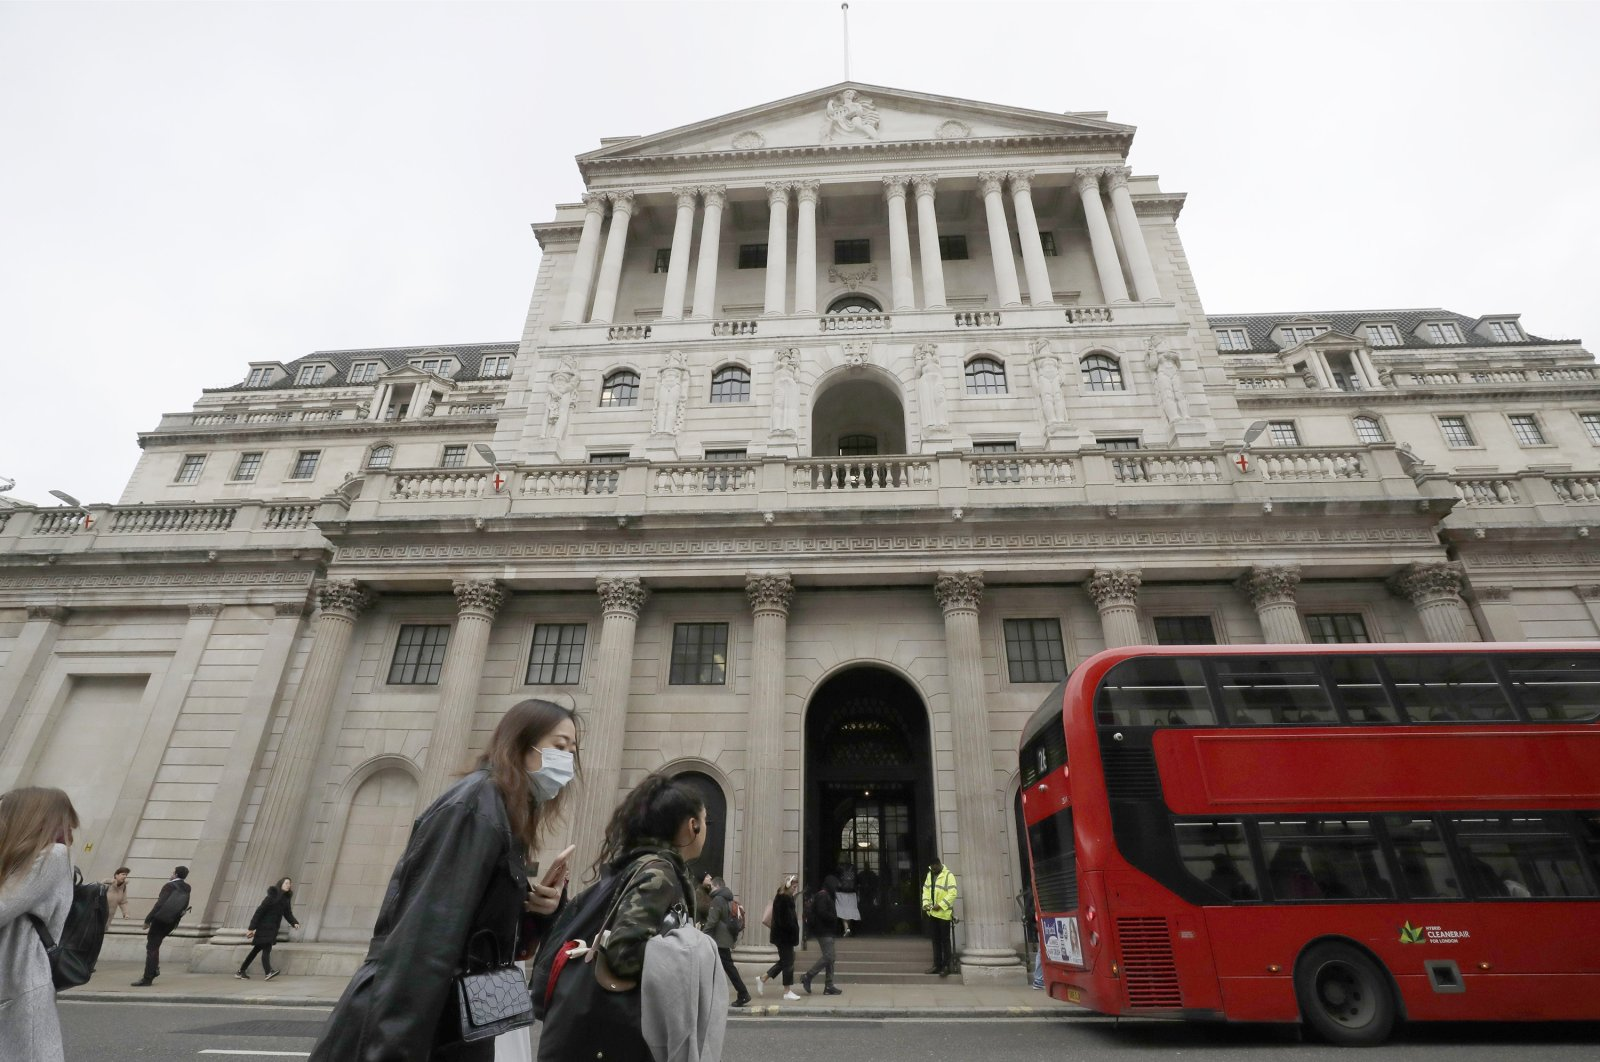 Pedestrians wearing face masks pass the Bank of England in London, Britain, March 11, 2020. (AP Photo)